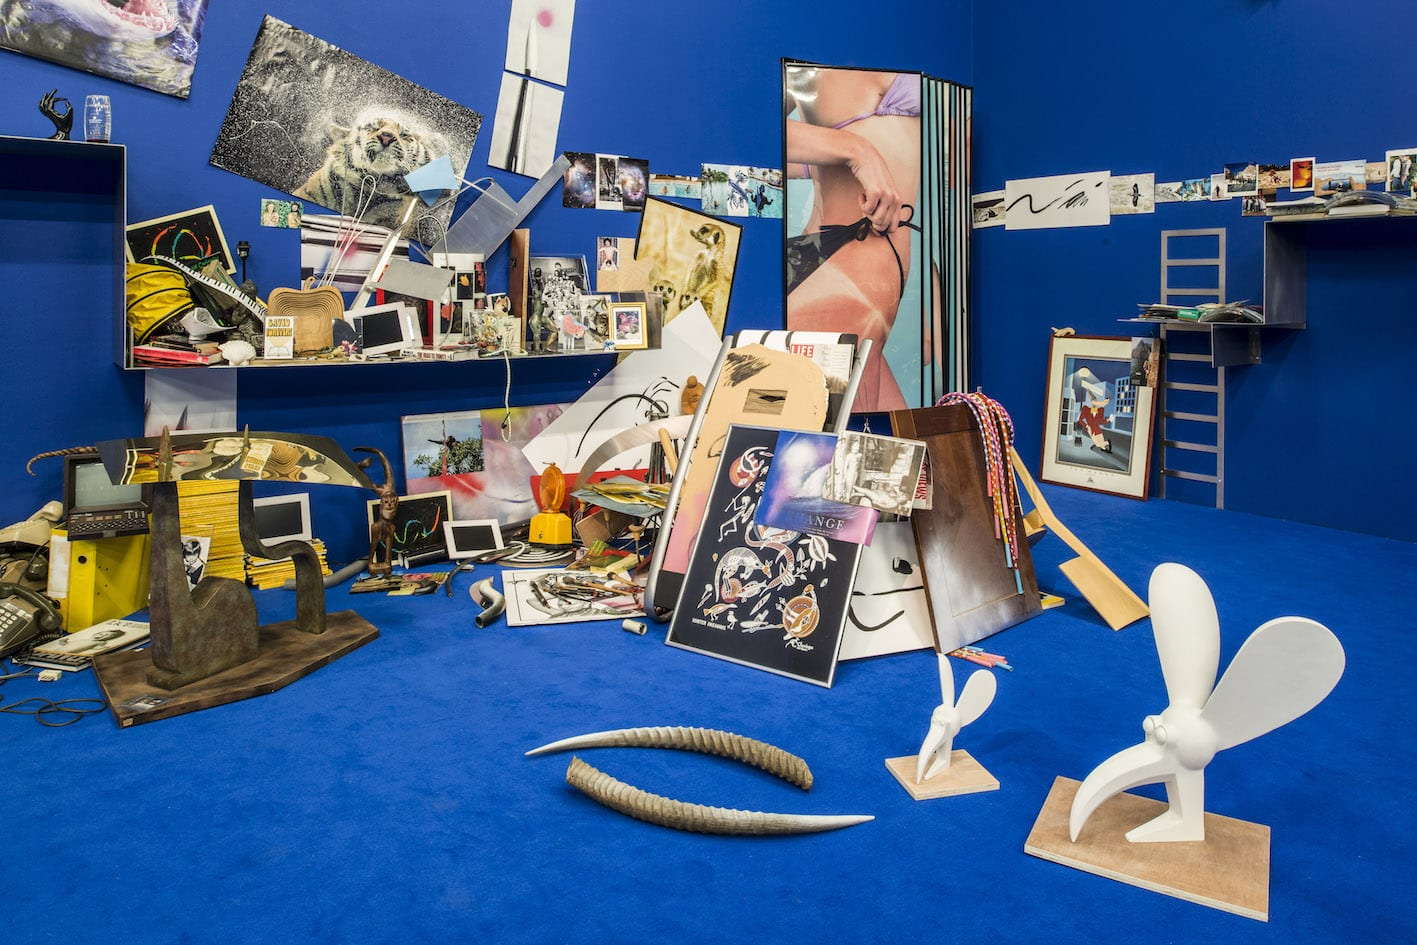 Days Are Dogs : Camille Henrot Investit Le Palais De Tokyo